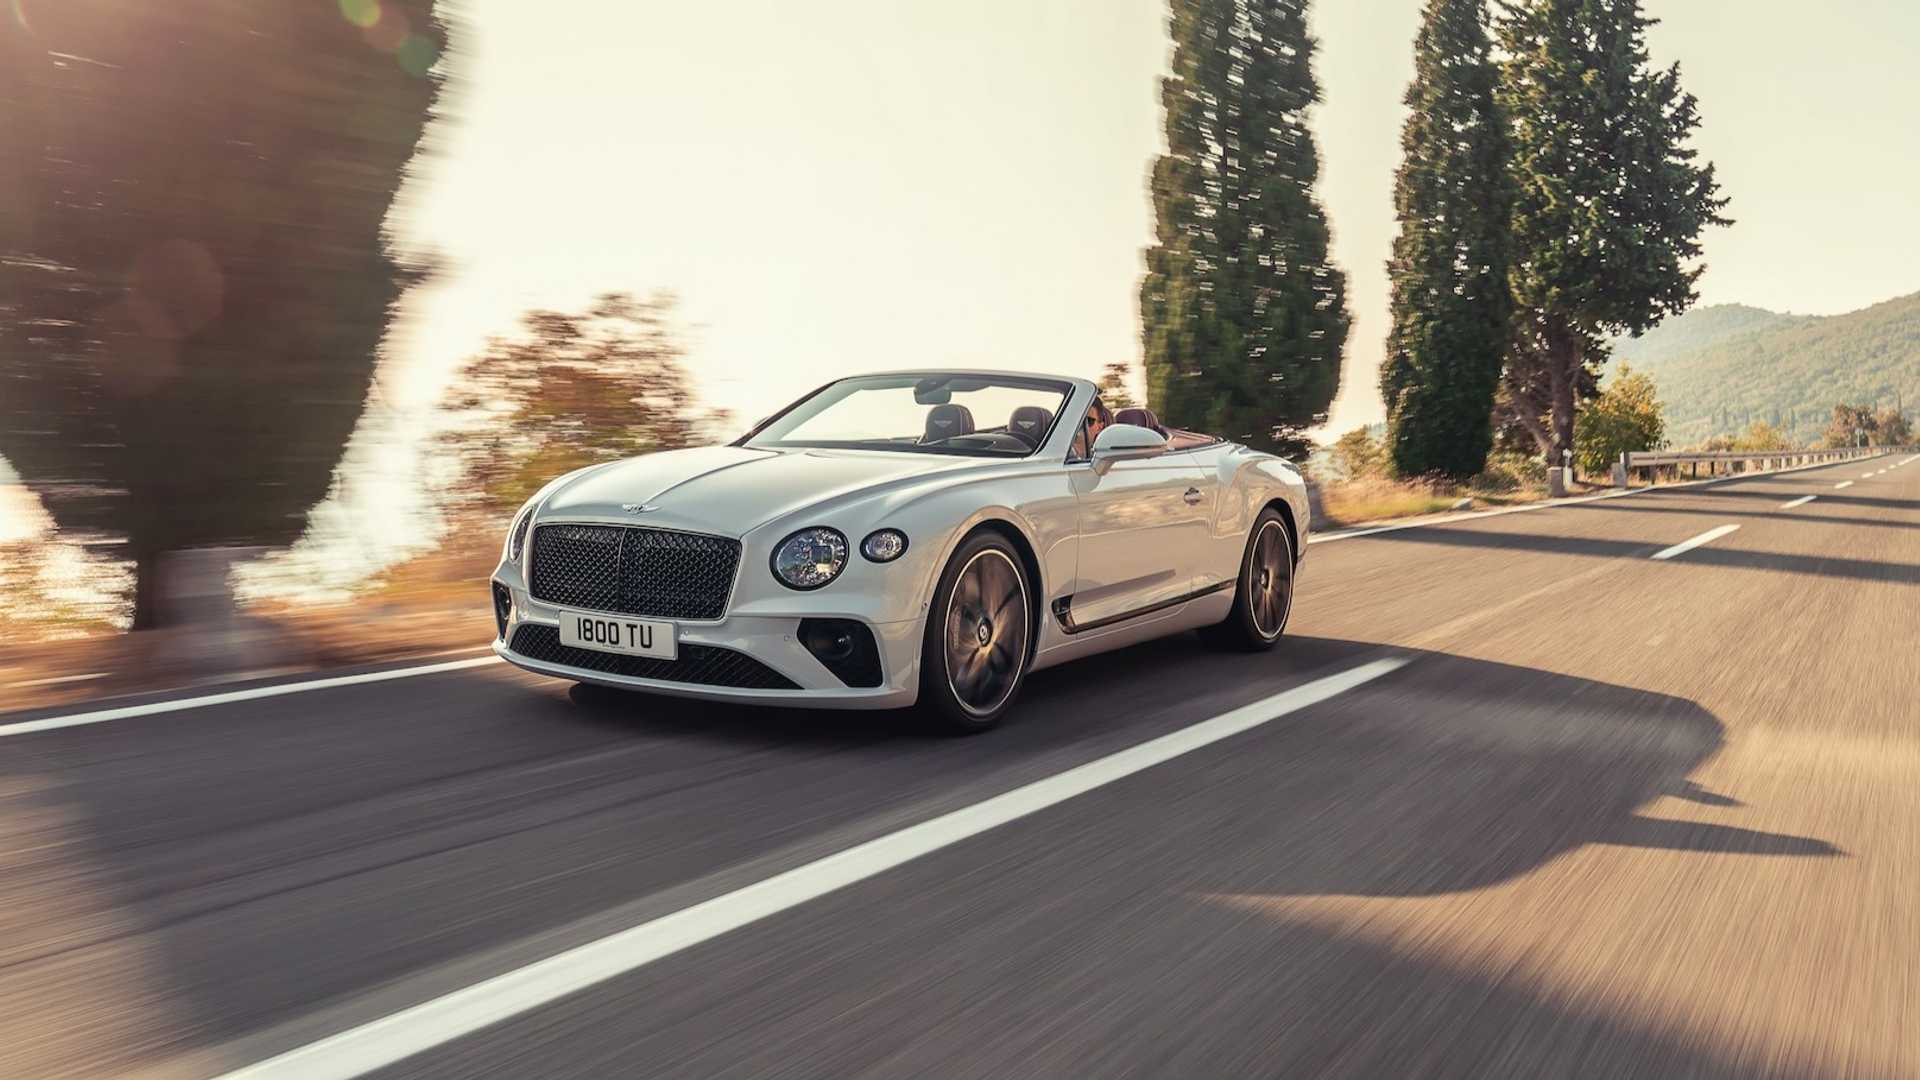 2019-bentley-continental-gt-convertible-unveiled-207-mph-luxury-droptop (1)